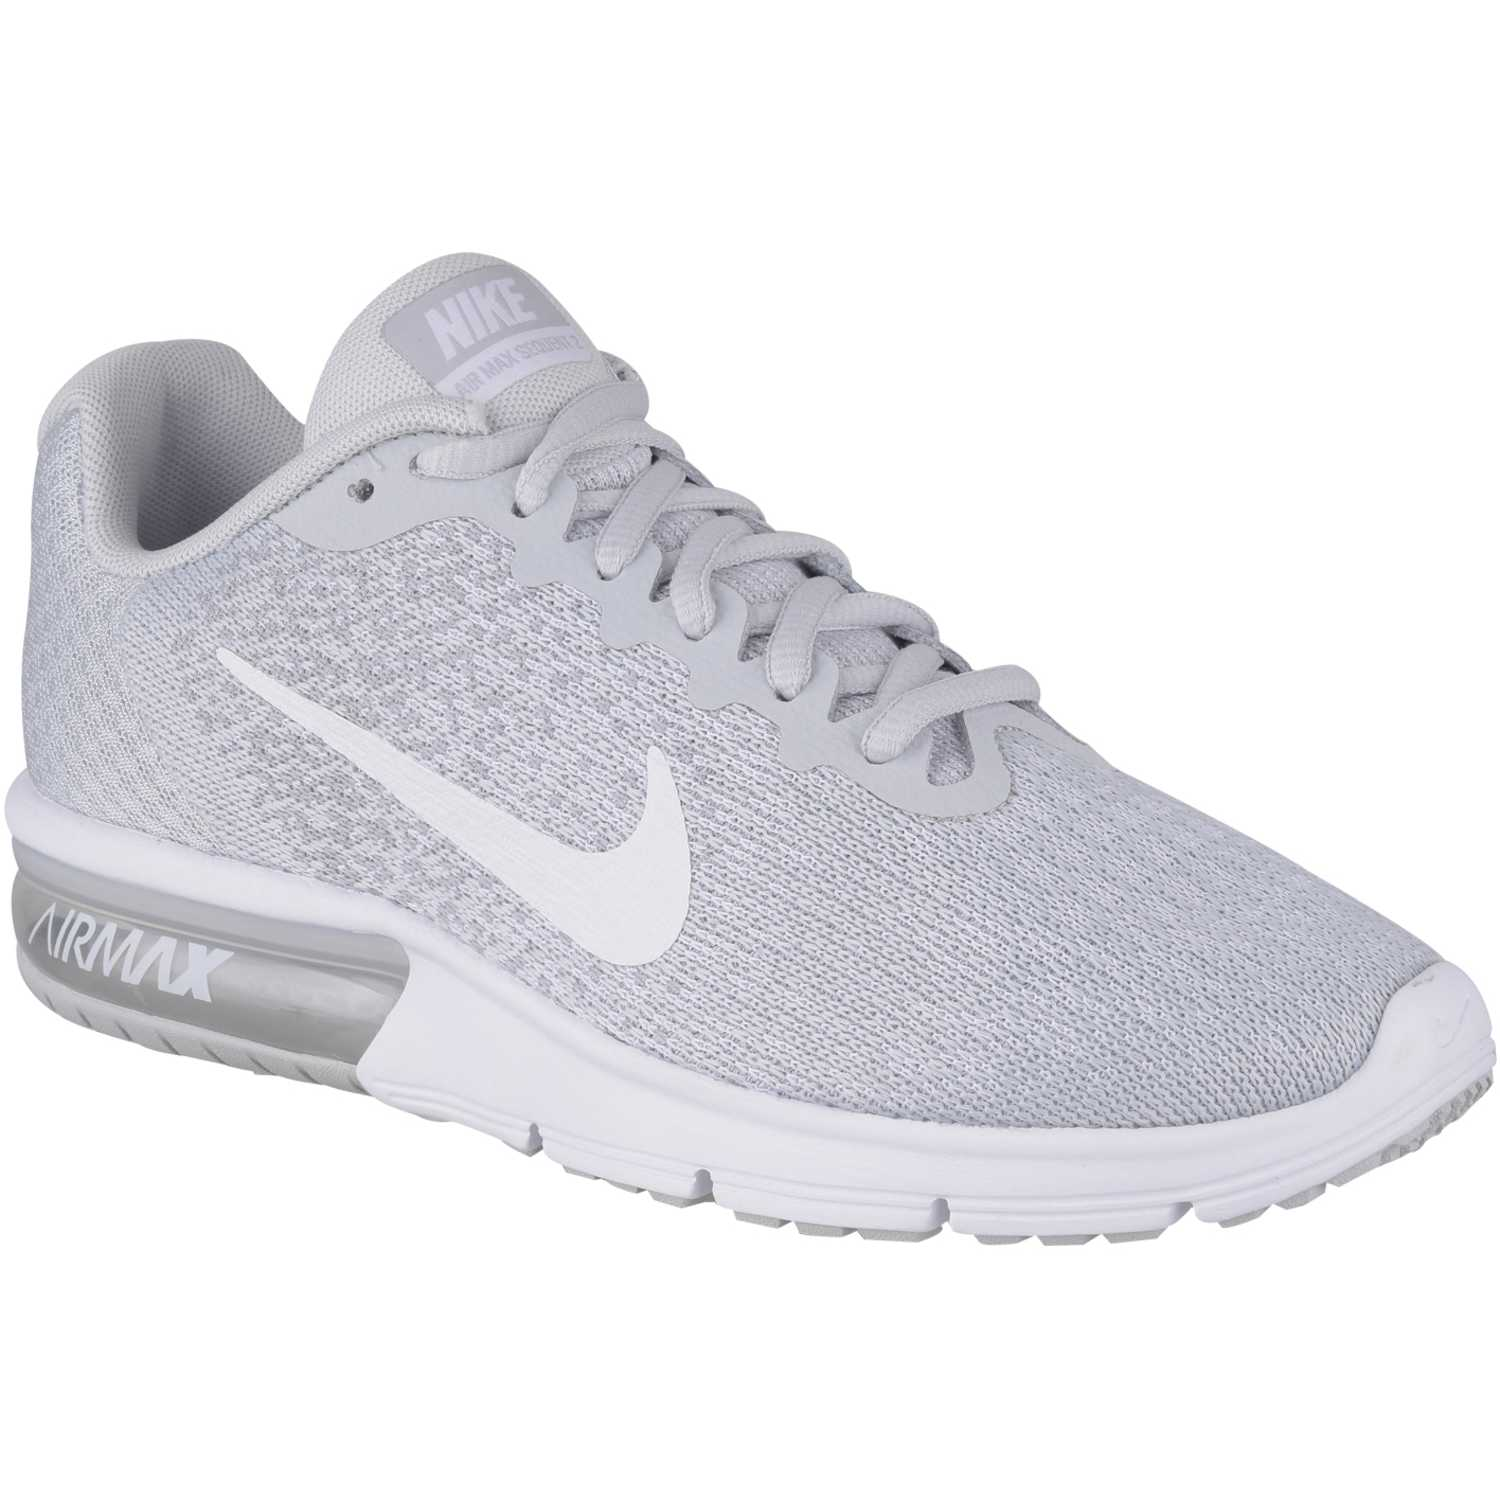 watch 2fe4a 28b67 Zapatilla de Mujer Nike Gris   blanco wmns air max sequent 2